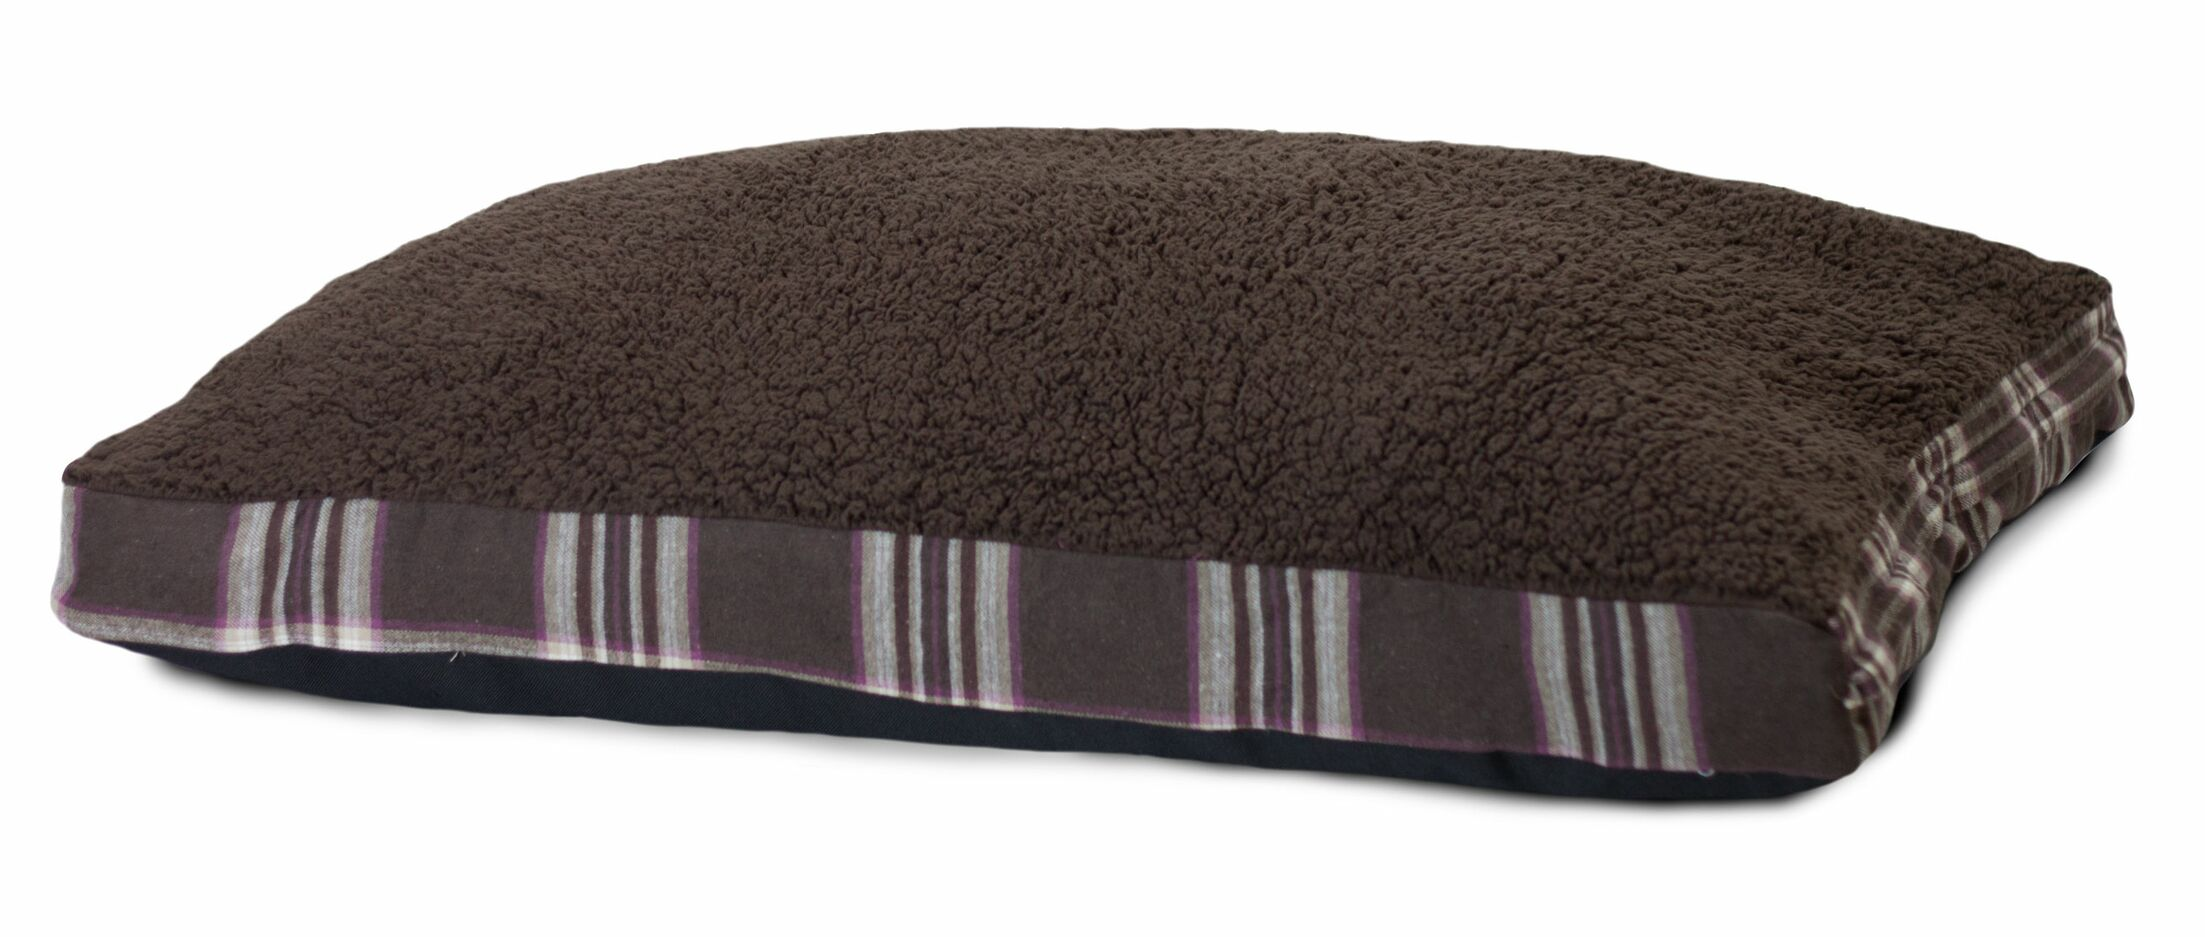 Evie Faux Sheepskin and Plaid Deluxe Dog Pillow Size: Medium - 30